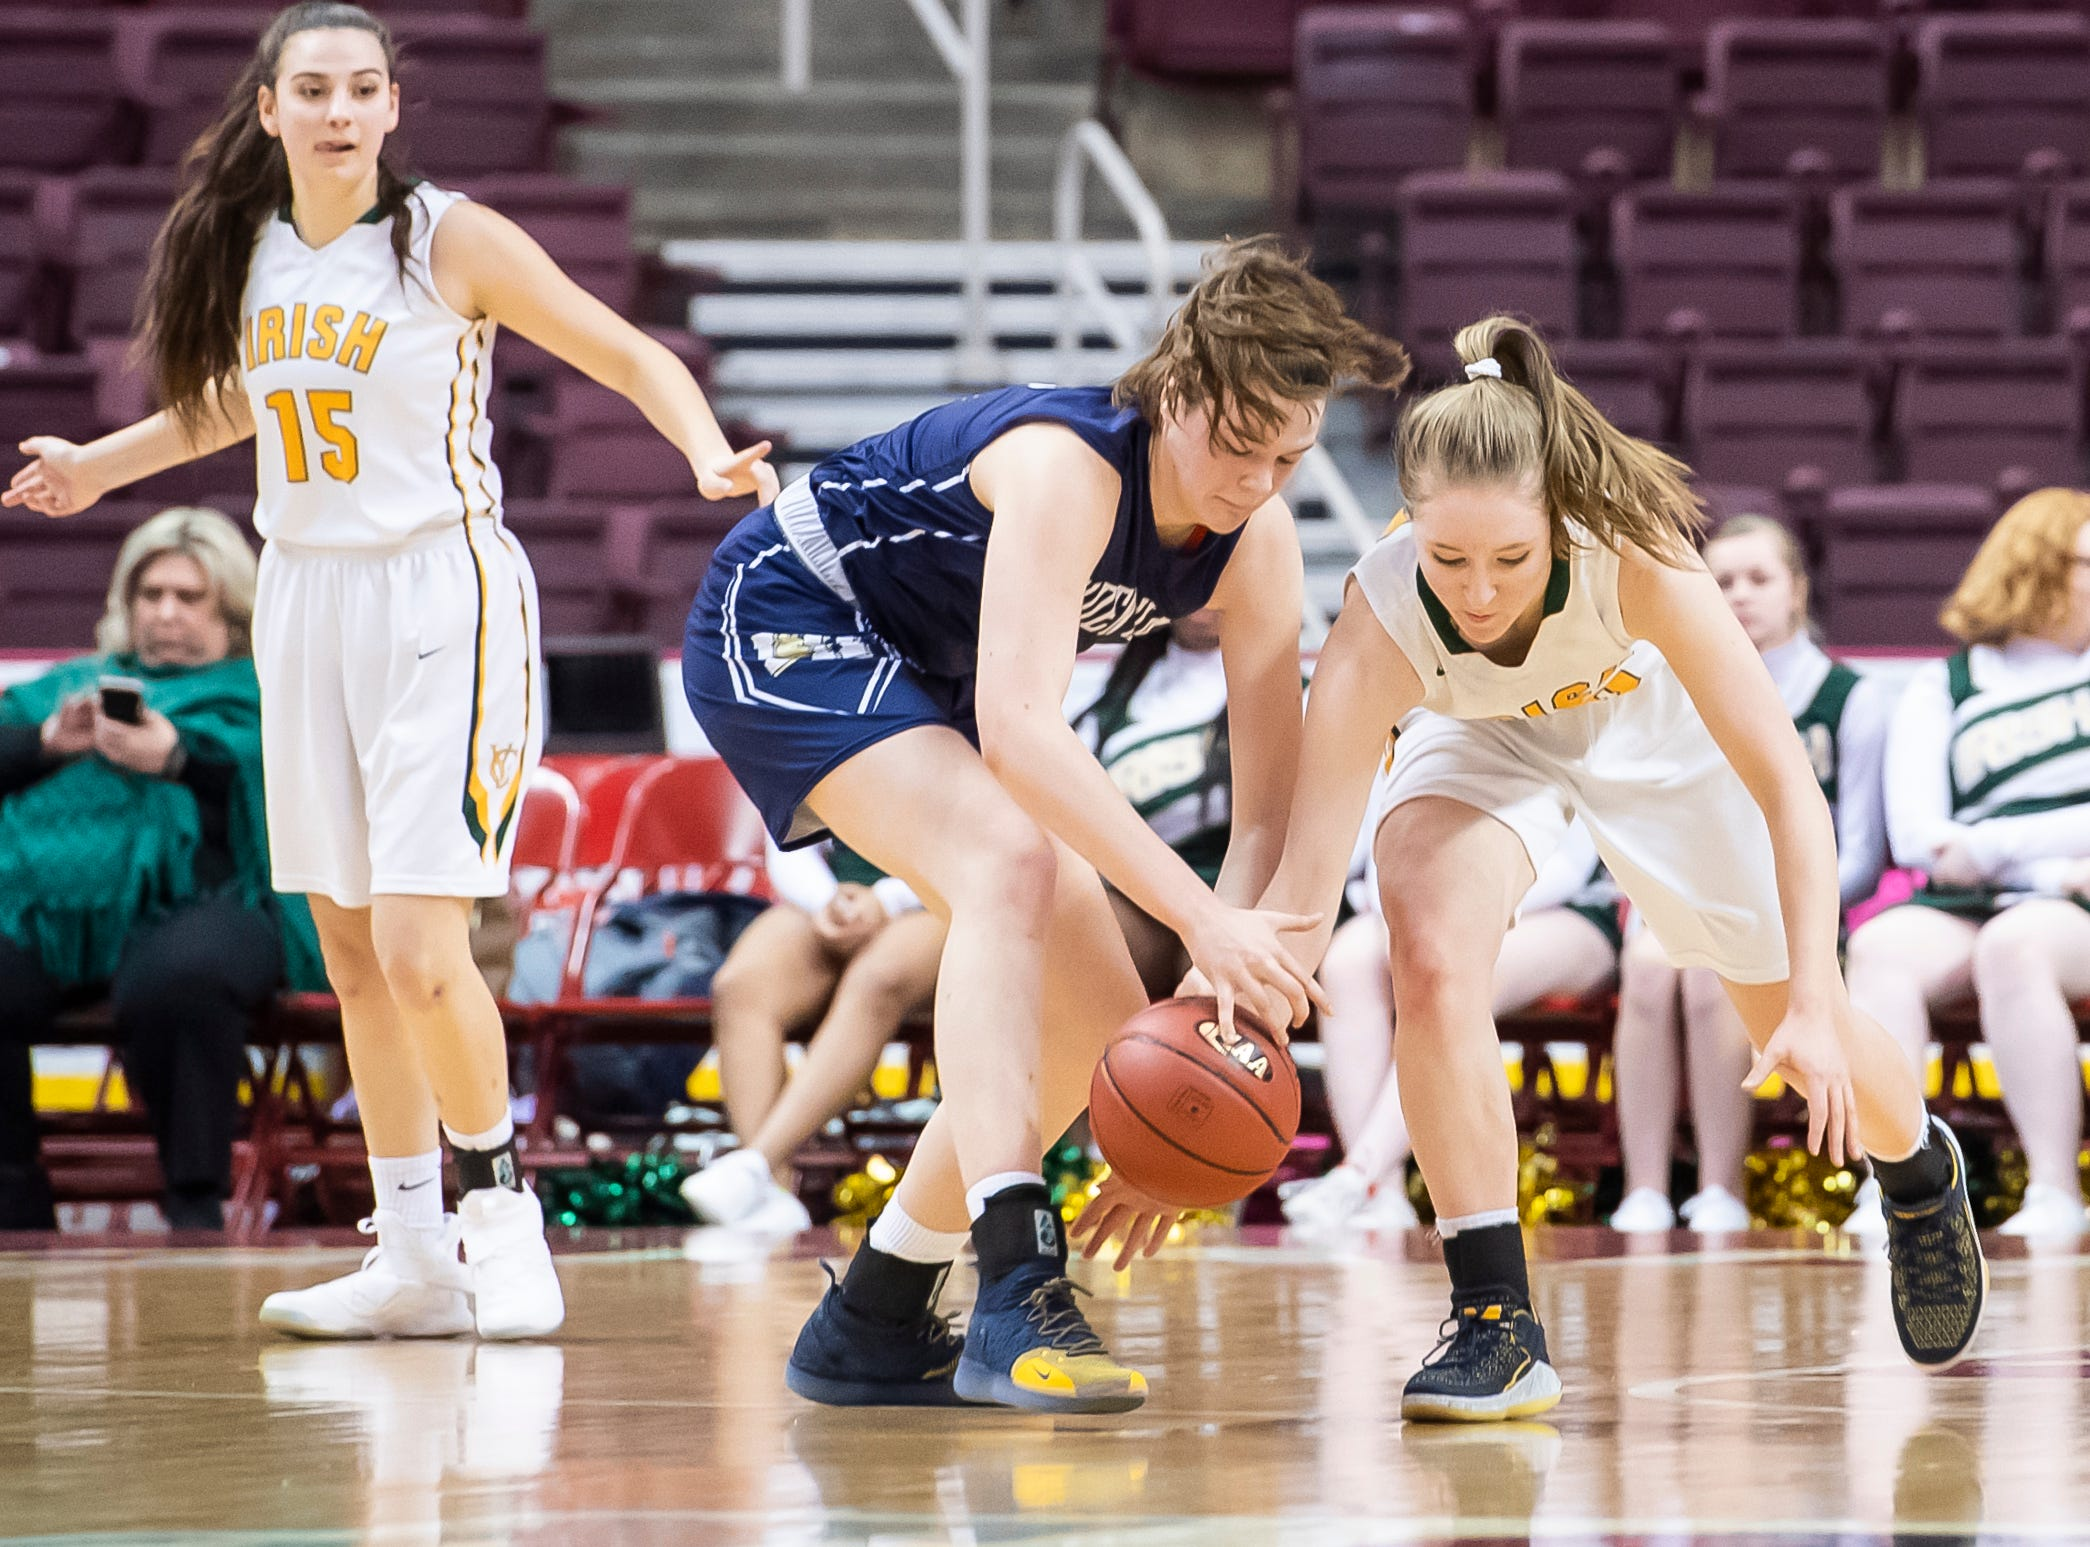 York Catholic's Katy Rader, right, makes a steal on Linden Hall's Hetta Saatman during the District 3 2-A girls championship game at the Giant Center in Hershey Tuesday, Feb. 26, 2019. The Fighting Irish fell 56-27.